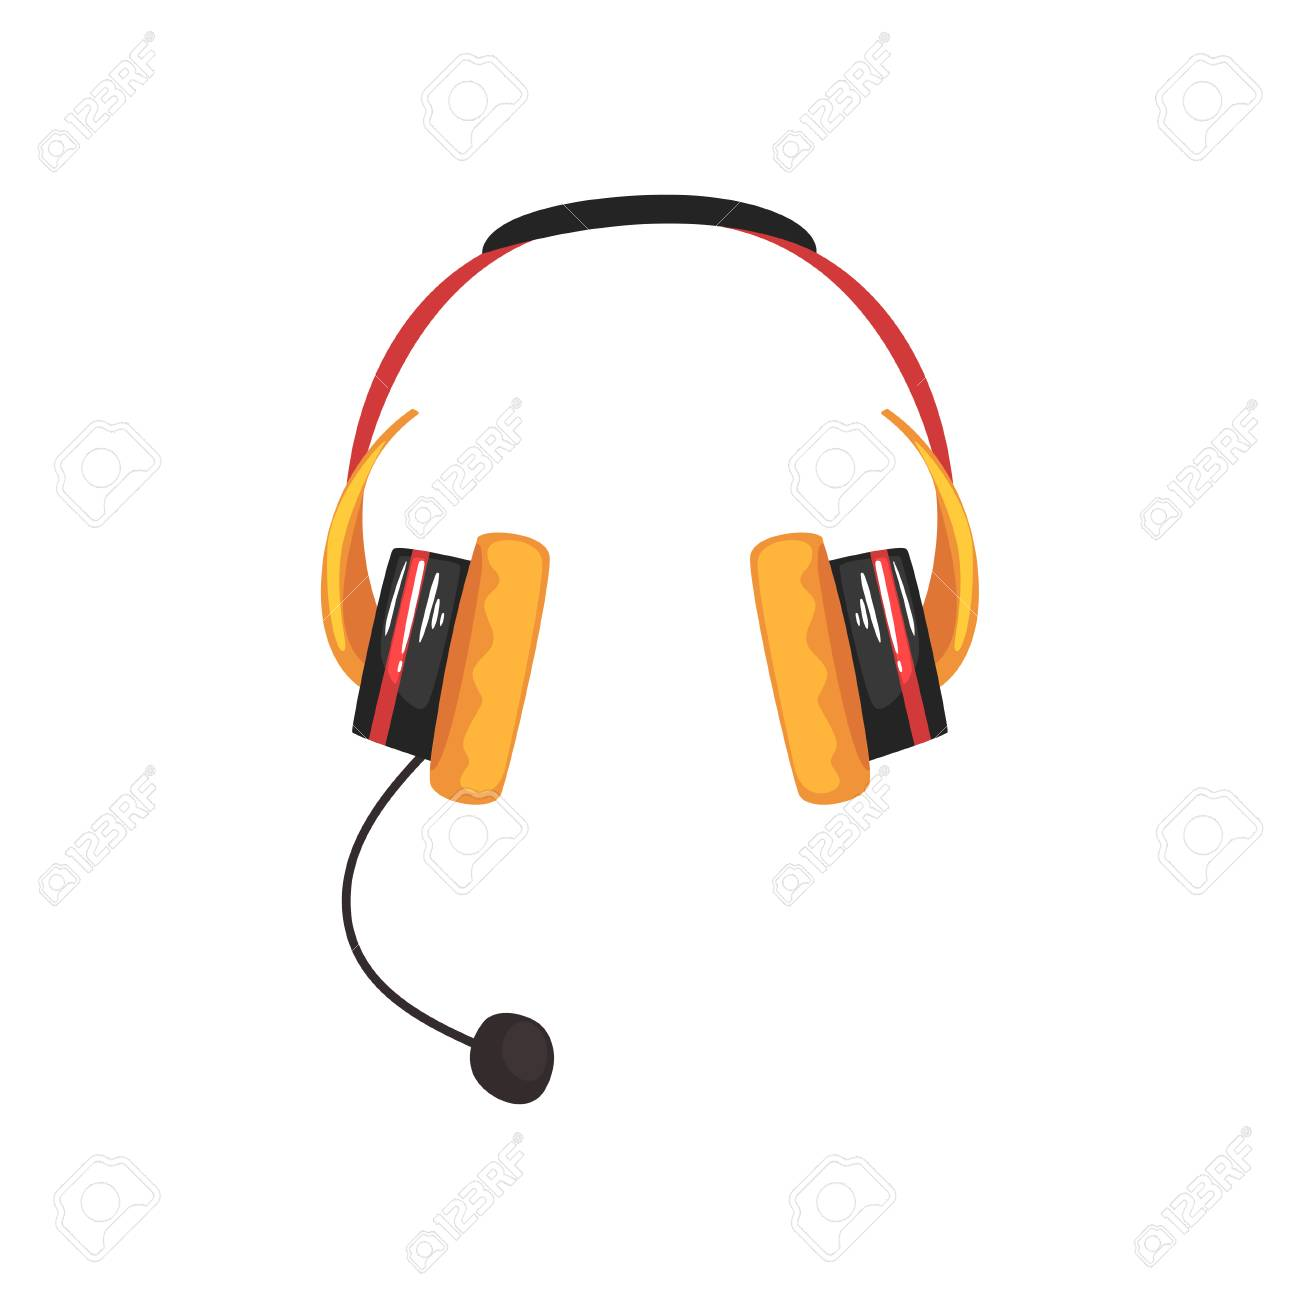 Yellow Wireless Headset Headphones With Microphone Cartoon Vector Royalty Free Cliparts Vectors And Stock Illustration Image 91633411